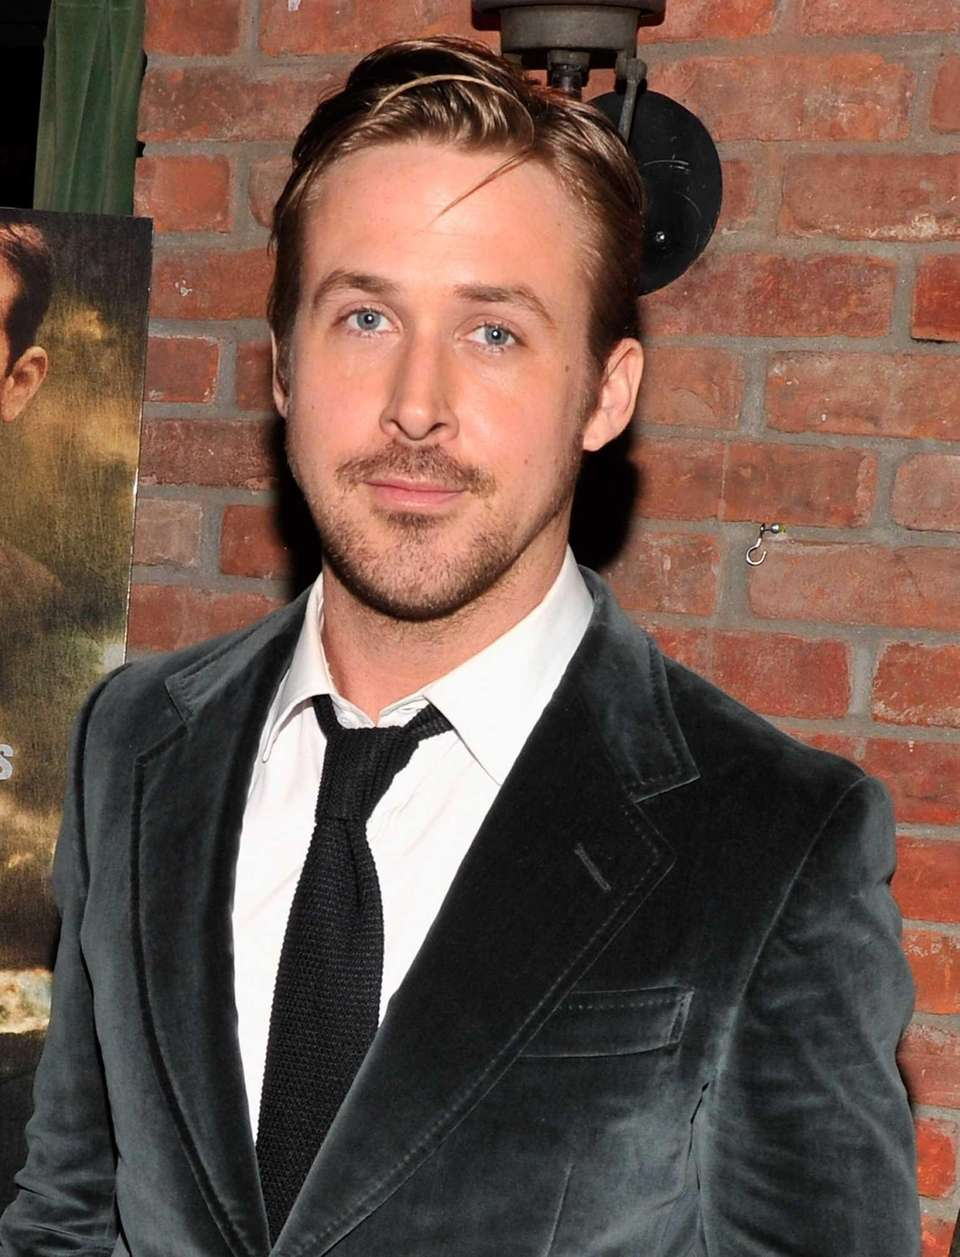 Ryan Gosling joined Spears, Timberlake and Aguilera on